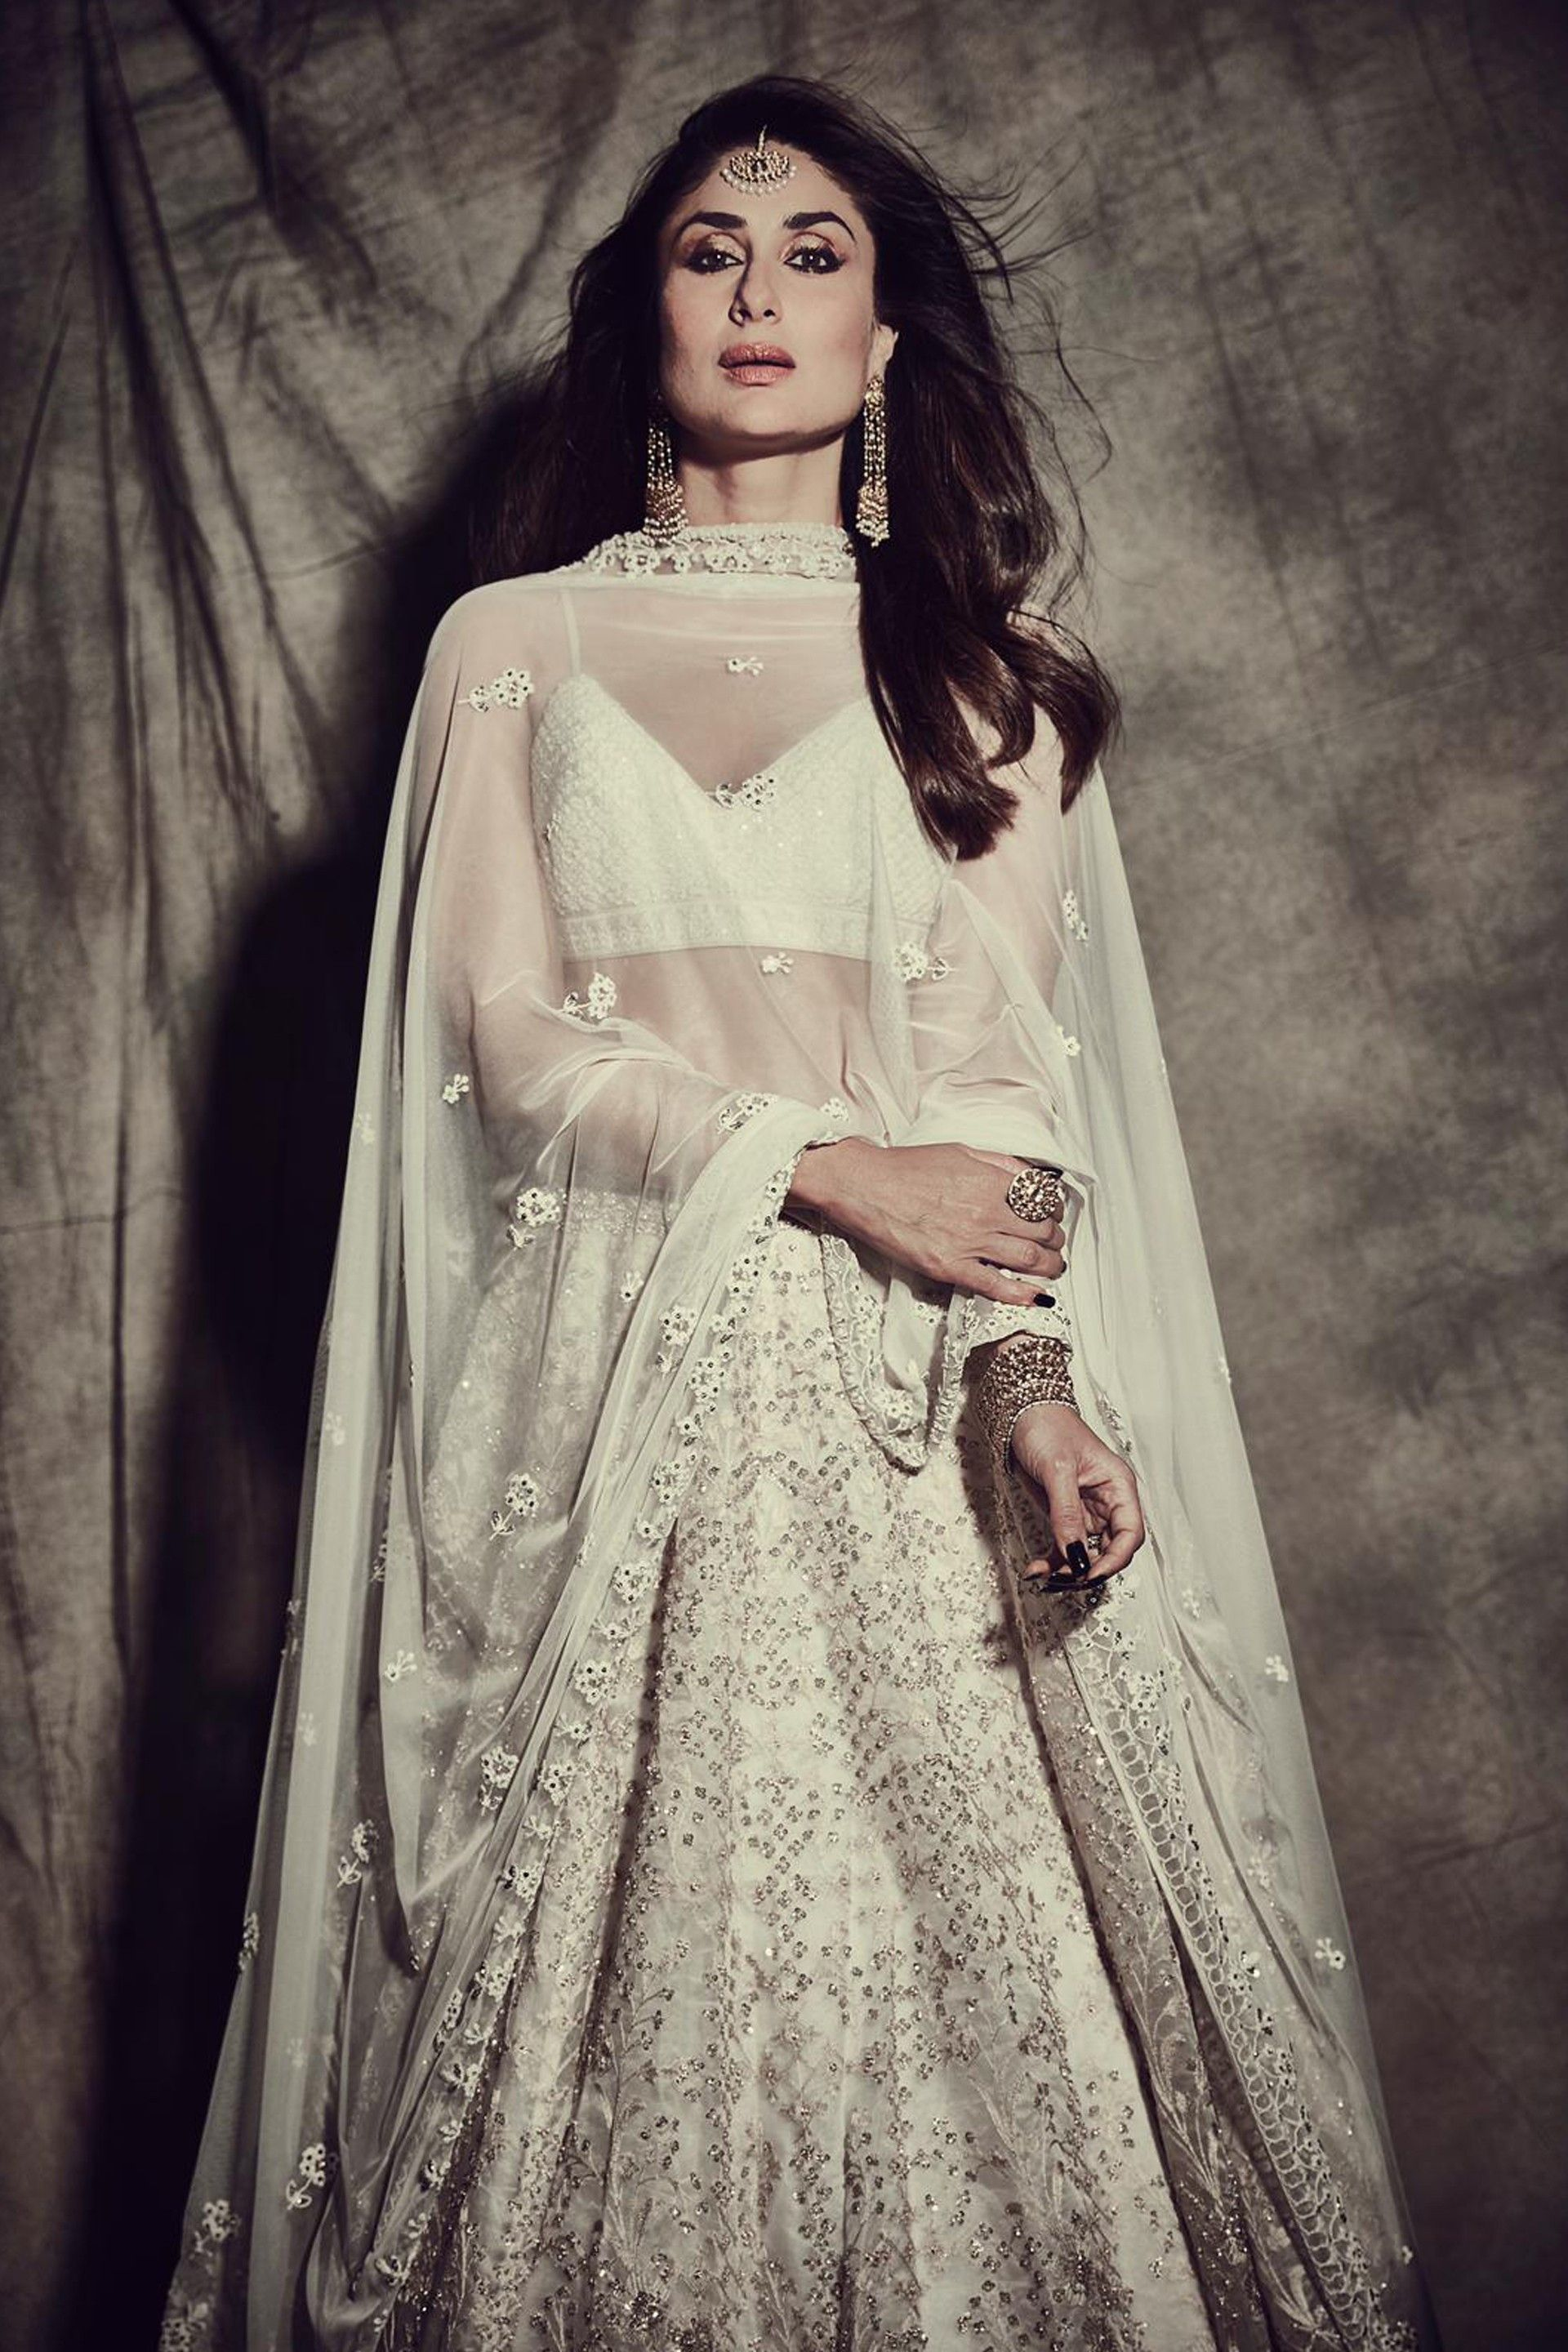 Kareena Kapoor In A Beautiful White Anita Dongre Lehenga Picture Anita Dongre Website Kareena Kapoor Wedding Anita Dongre Lehenga Traditional Indian Dress